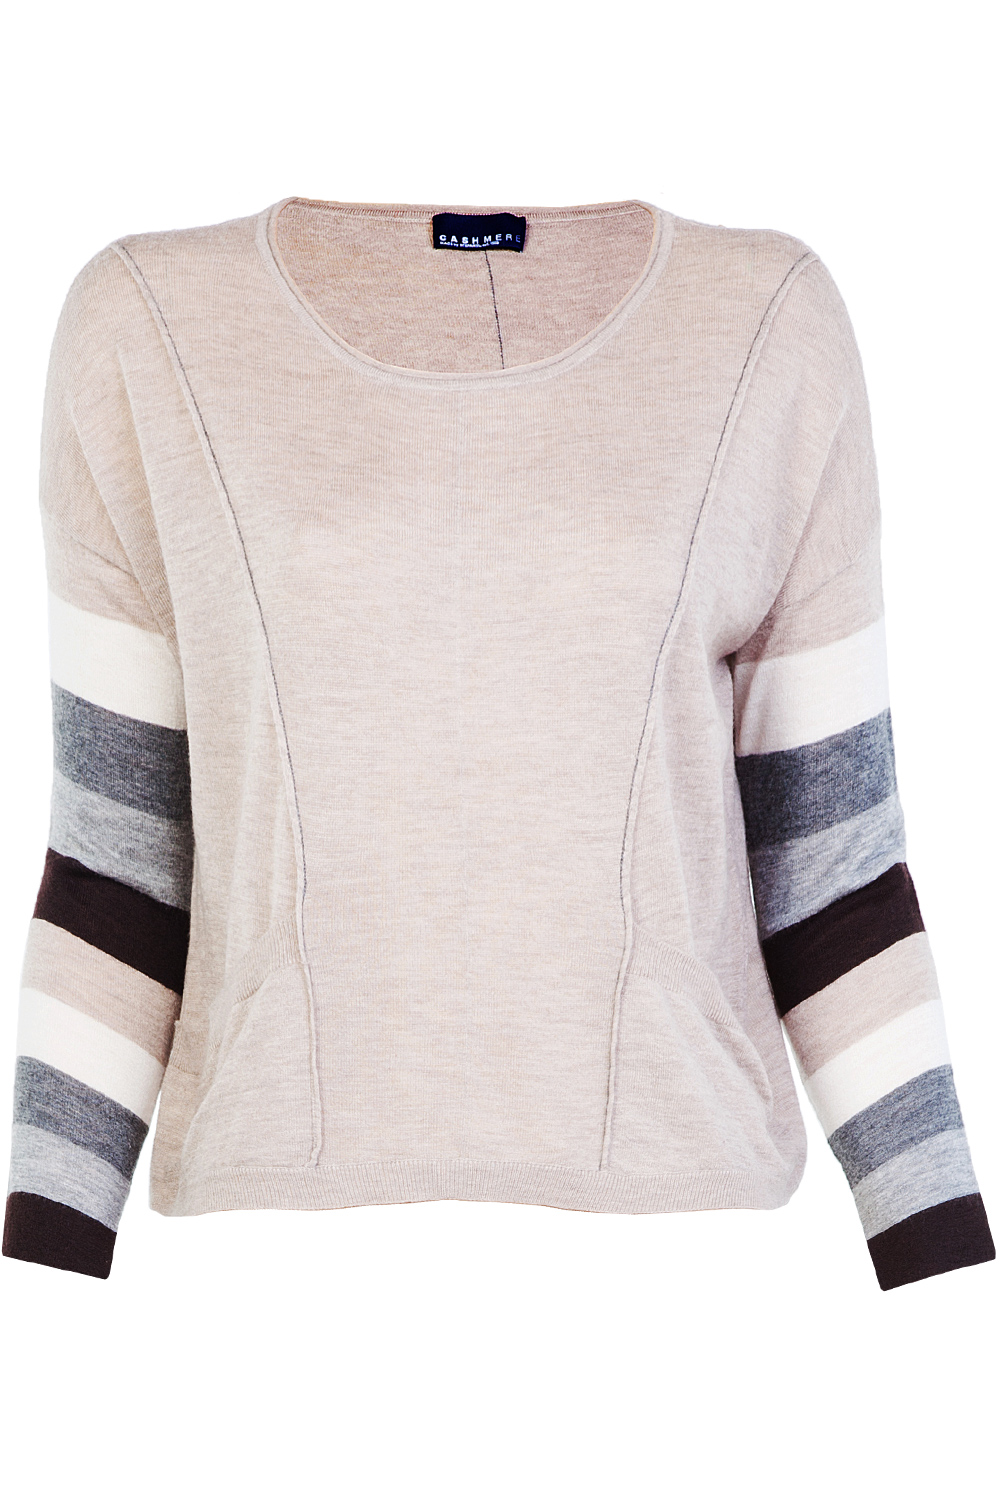 Stefanel Cashmere Sweater with Pockets Beige | 365ist